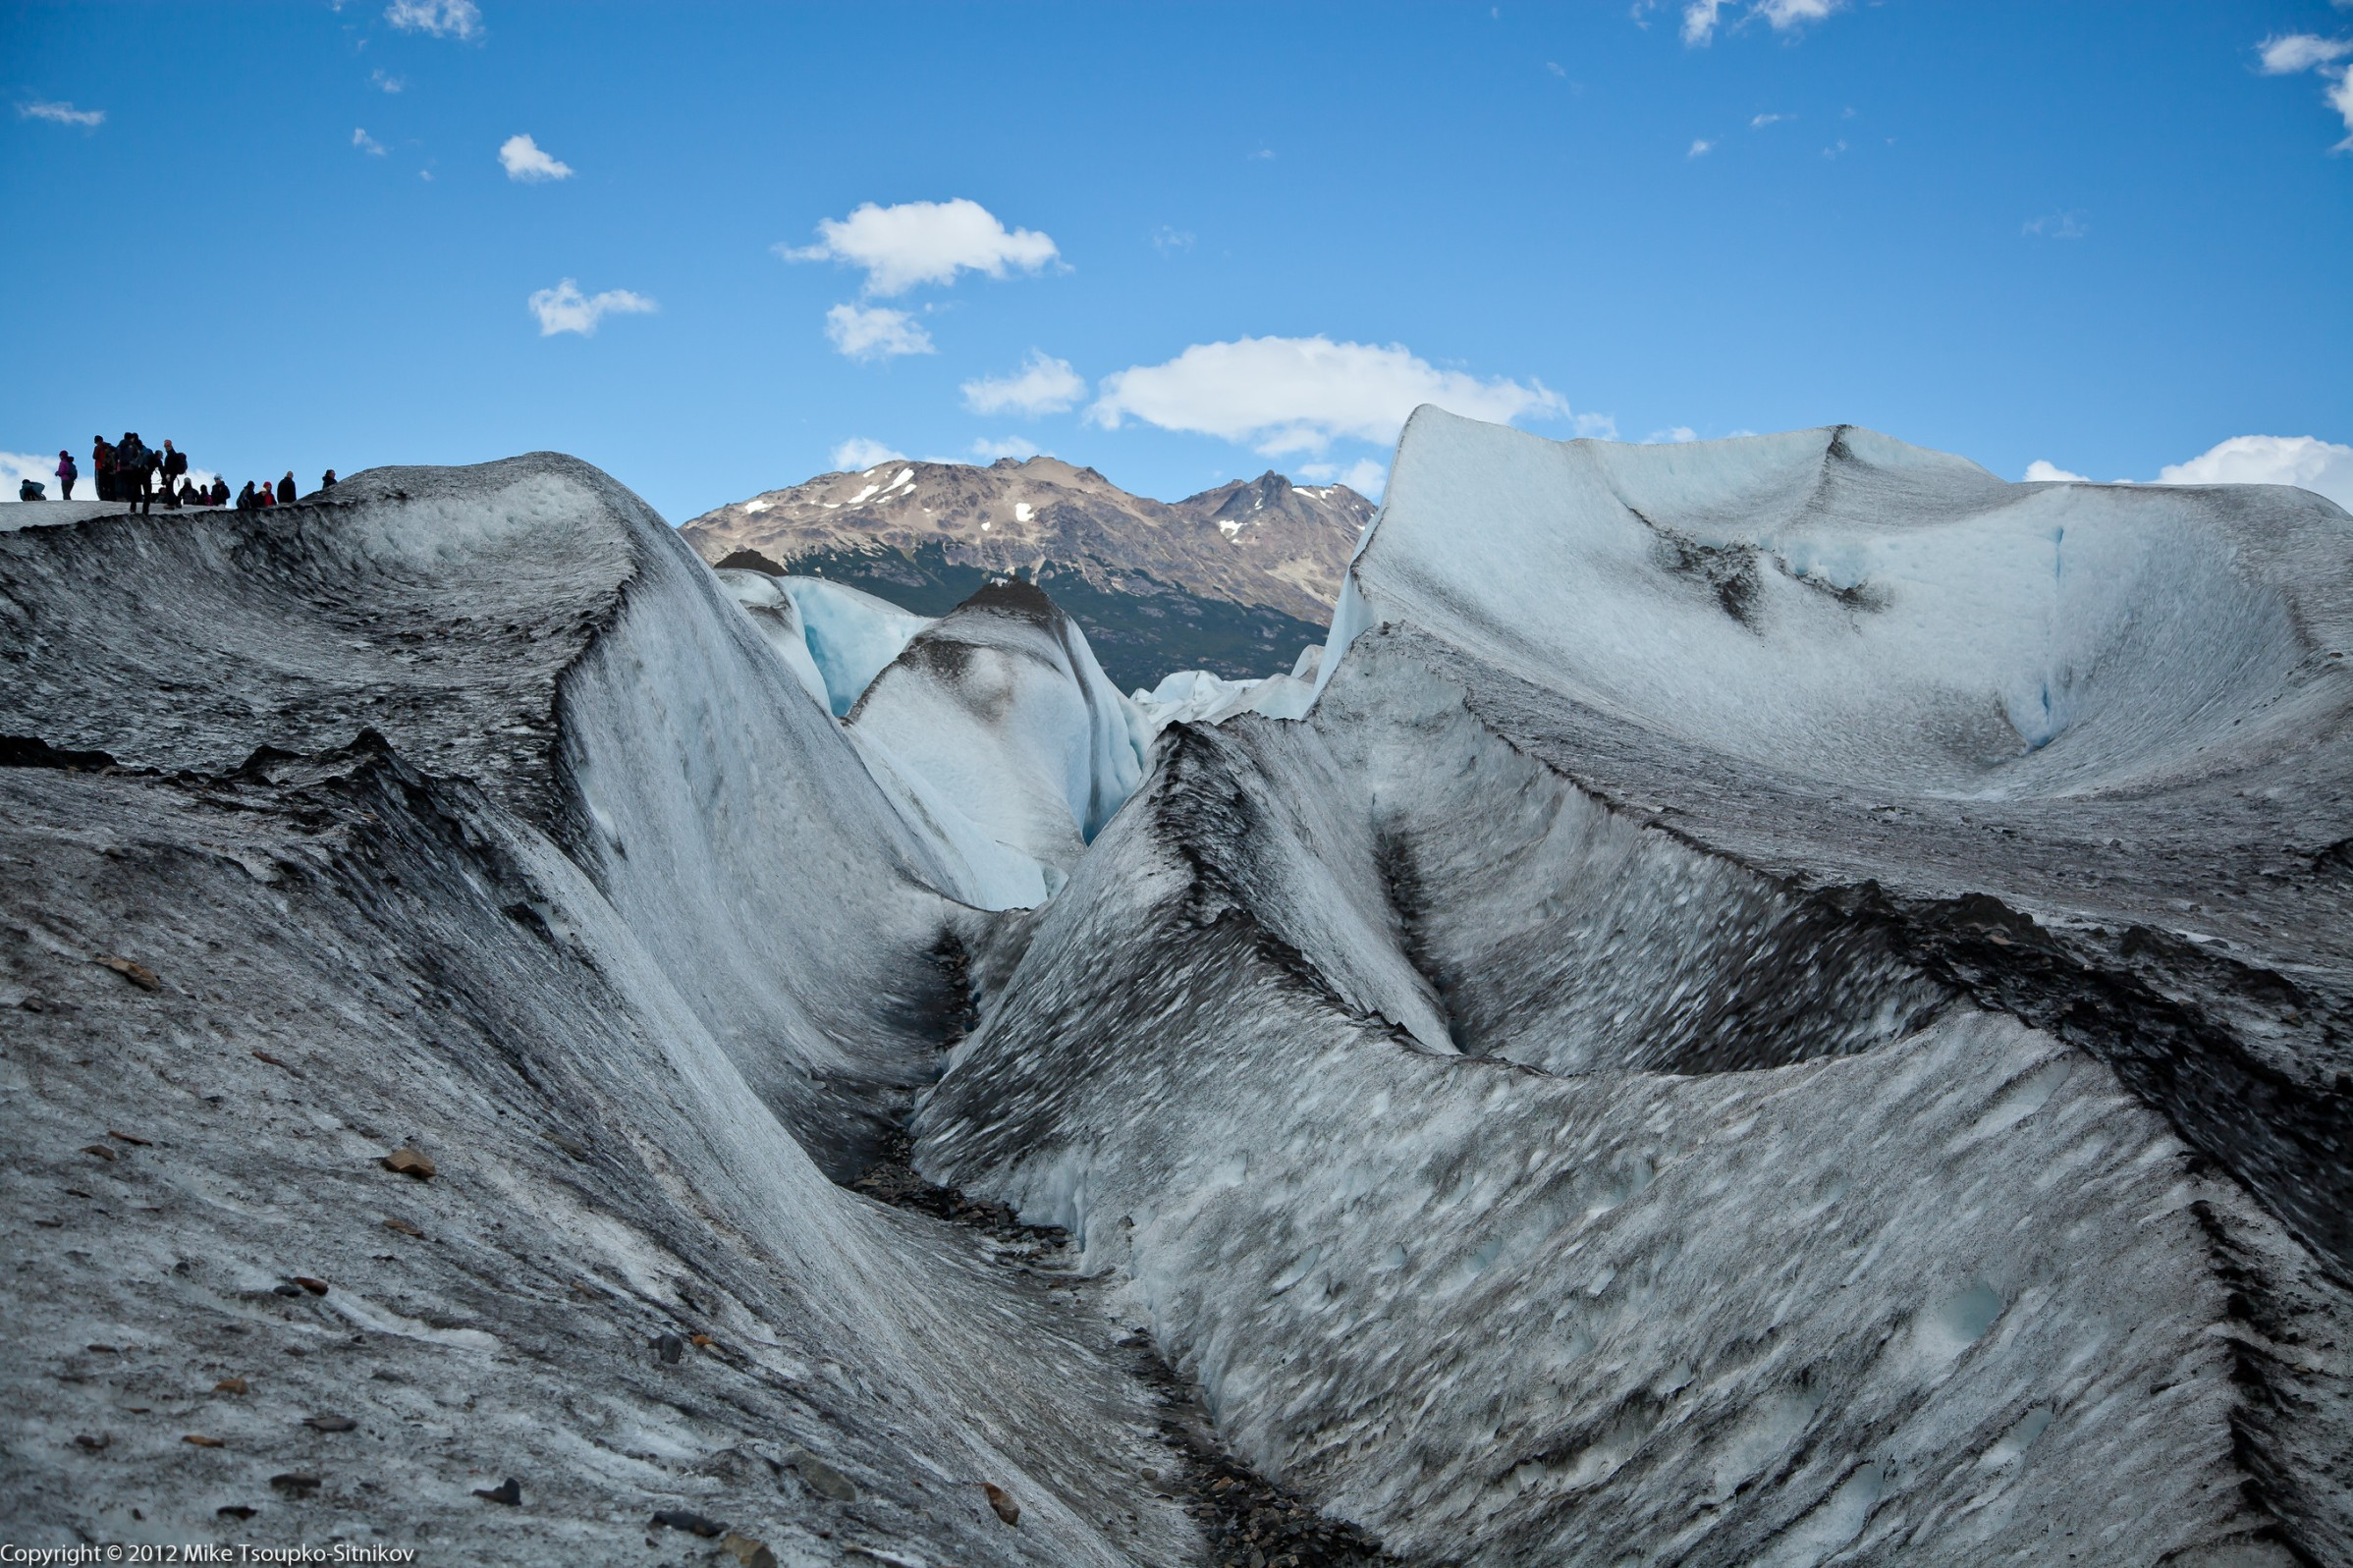 Viedma Glacier: it's not all pristine white